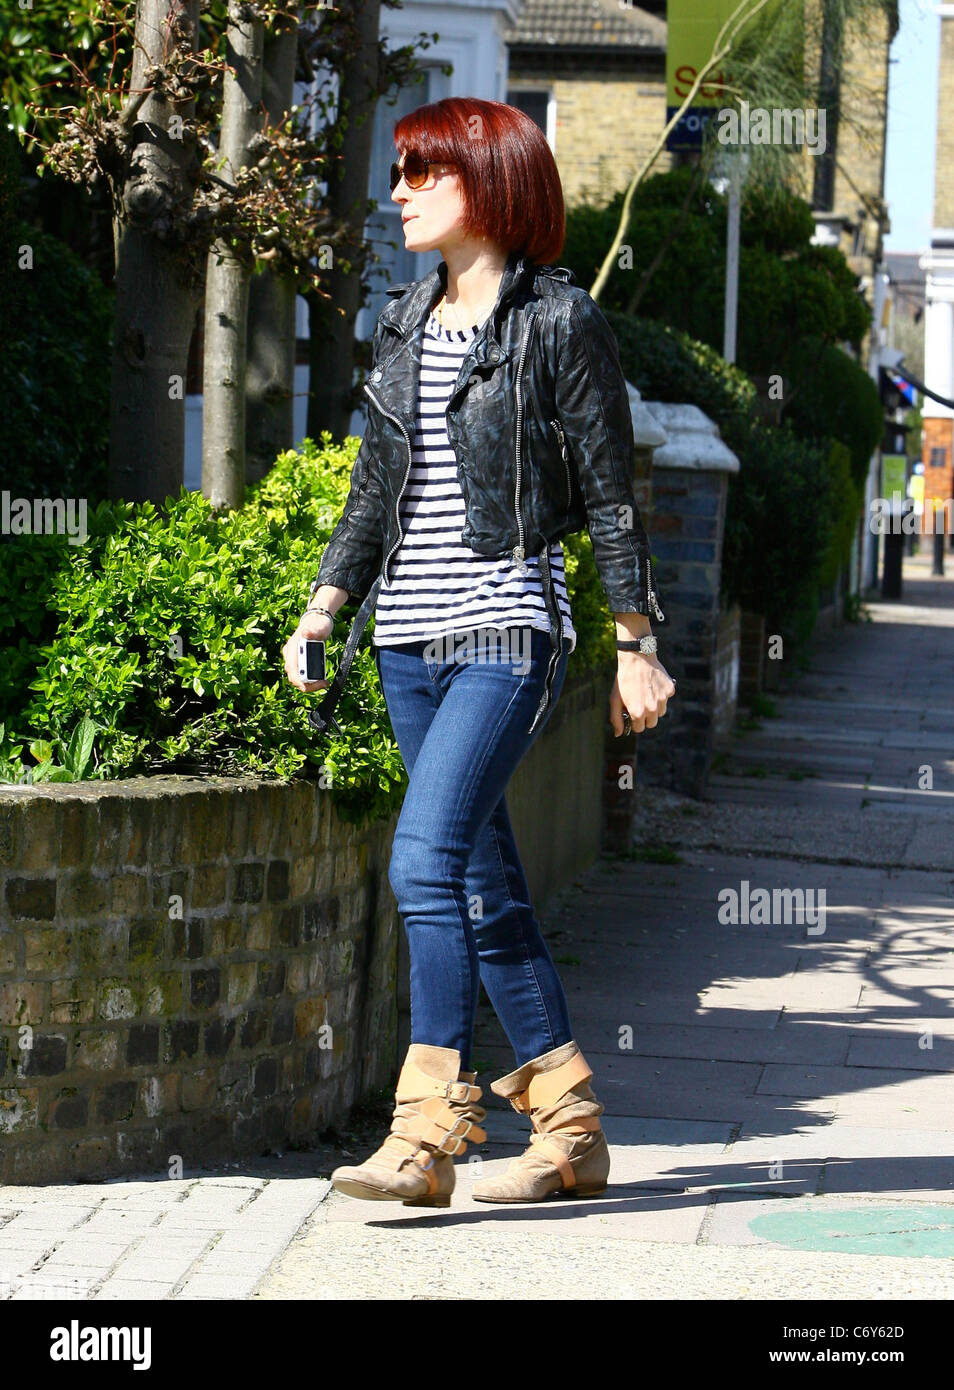 Emma Ferguson, The Wife Of Mark Owen, Returns Home After Getting Her Hair  Done